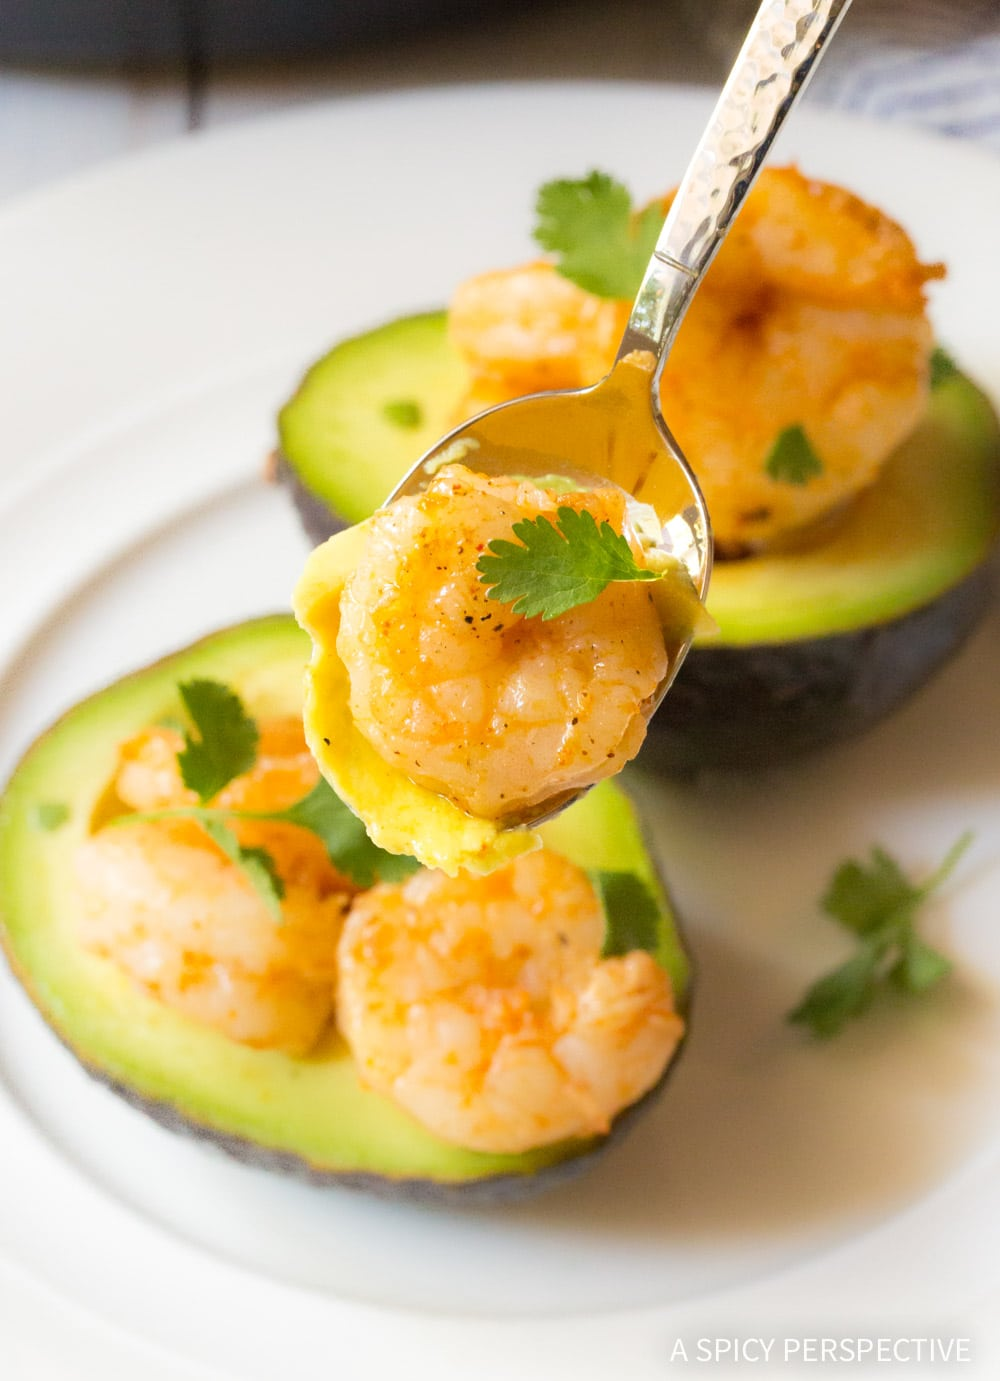 Best 6-Ingredient Keto Creole Shrimp Stuffed Avocado Recipe #ASpicyPerspective #ketogenic